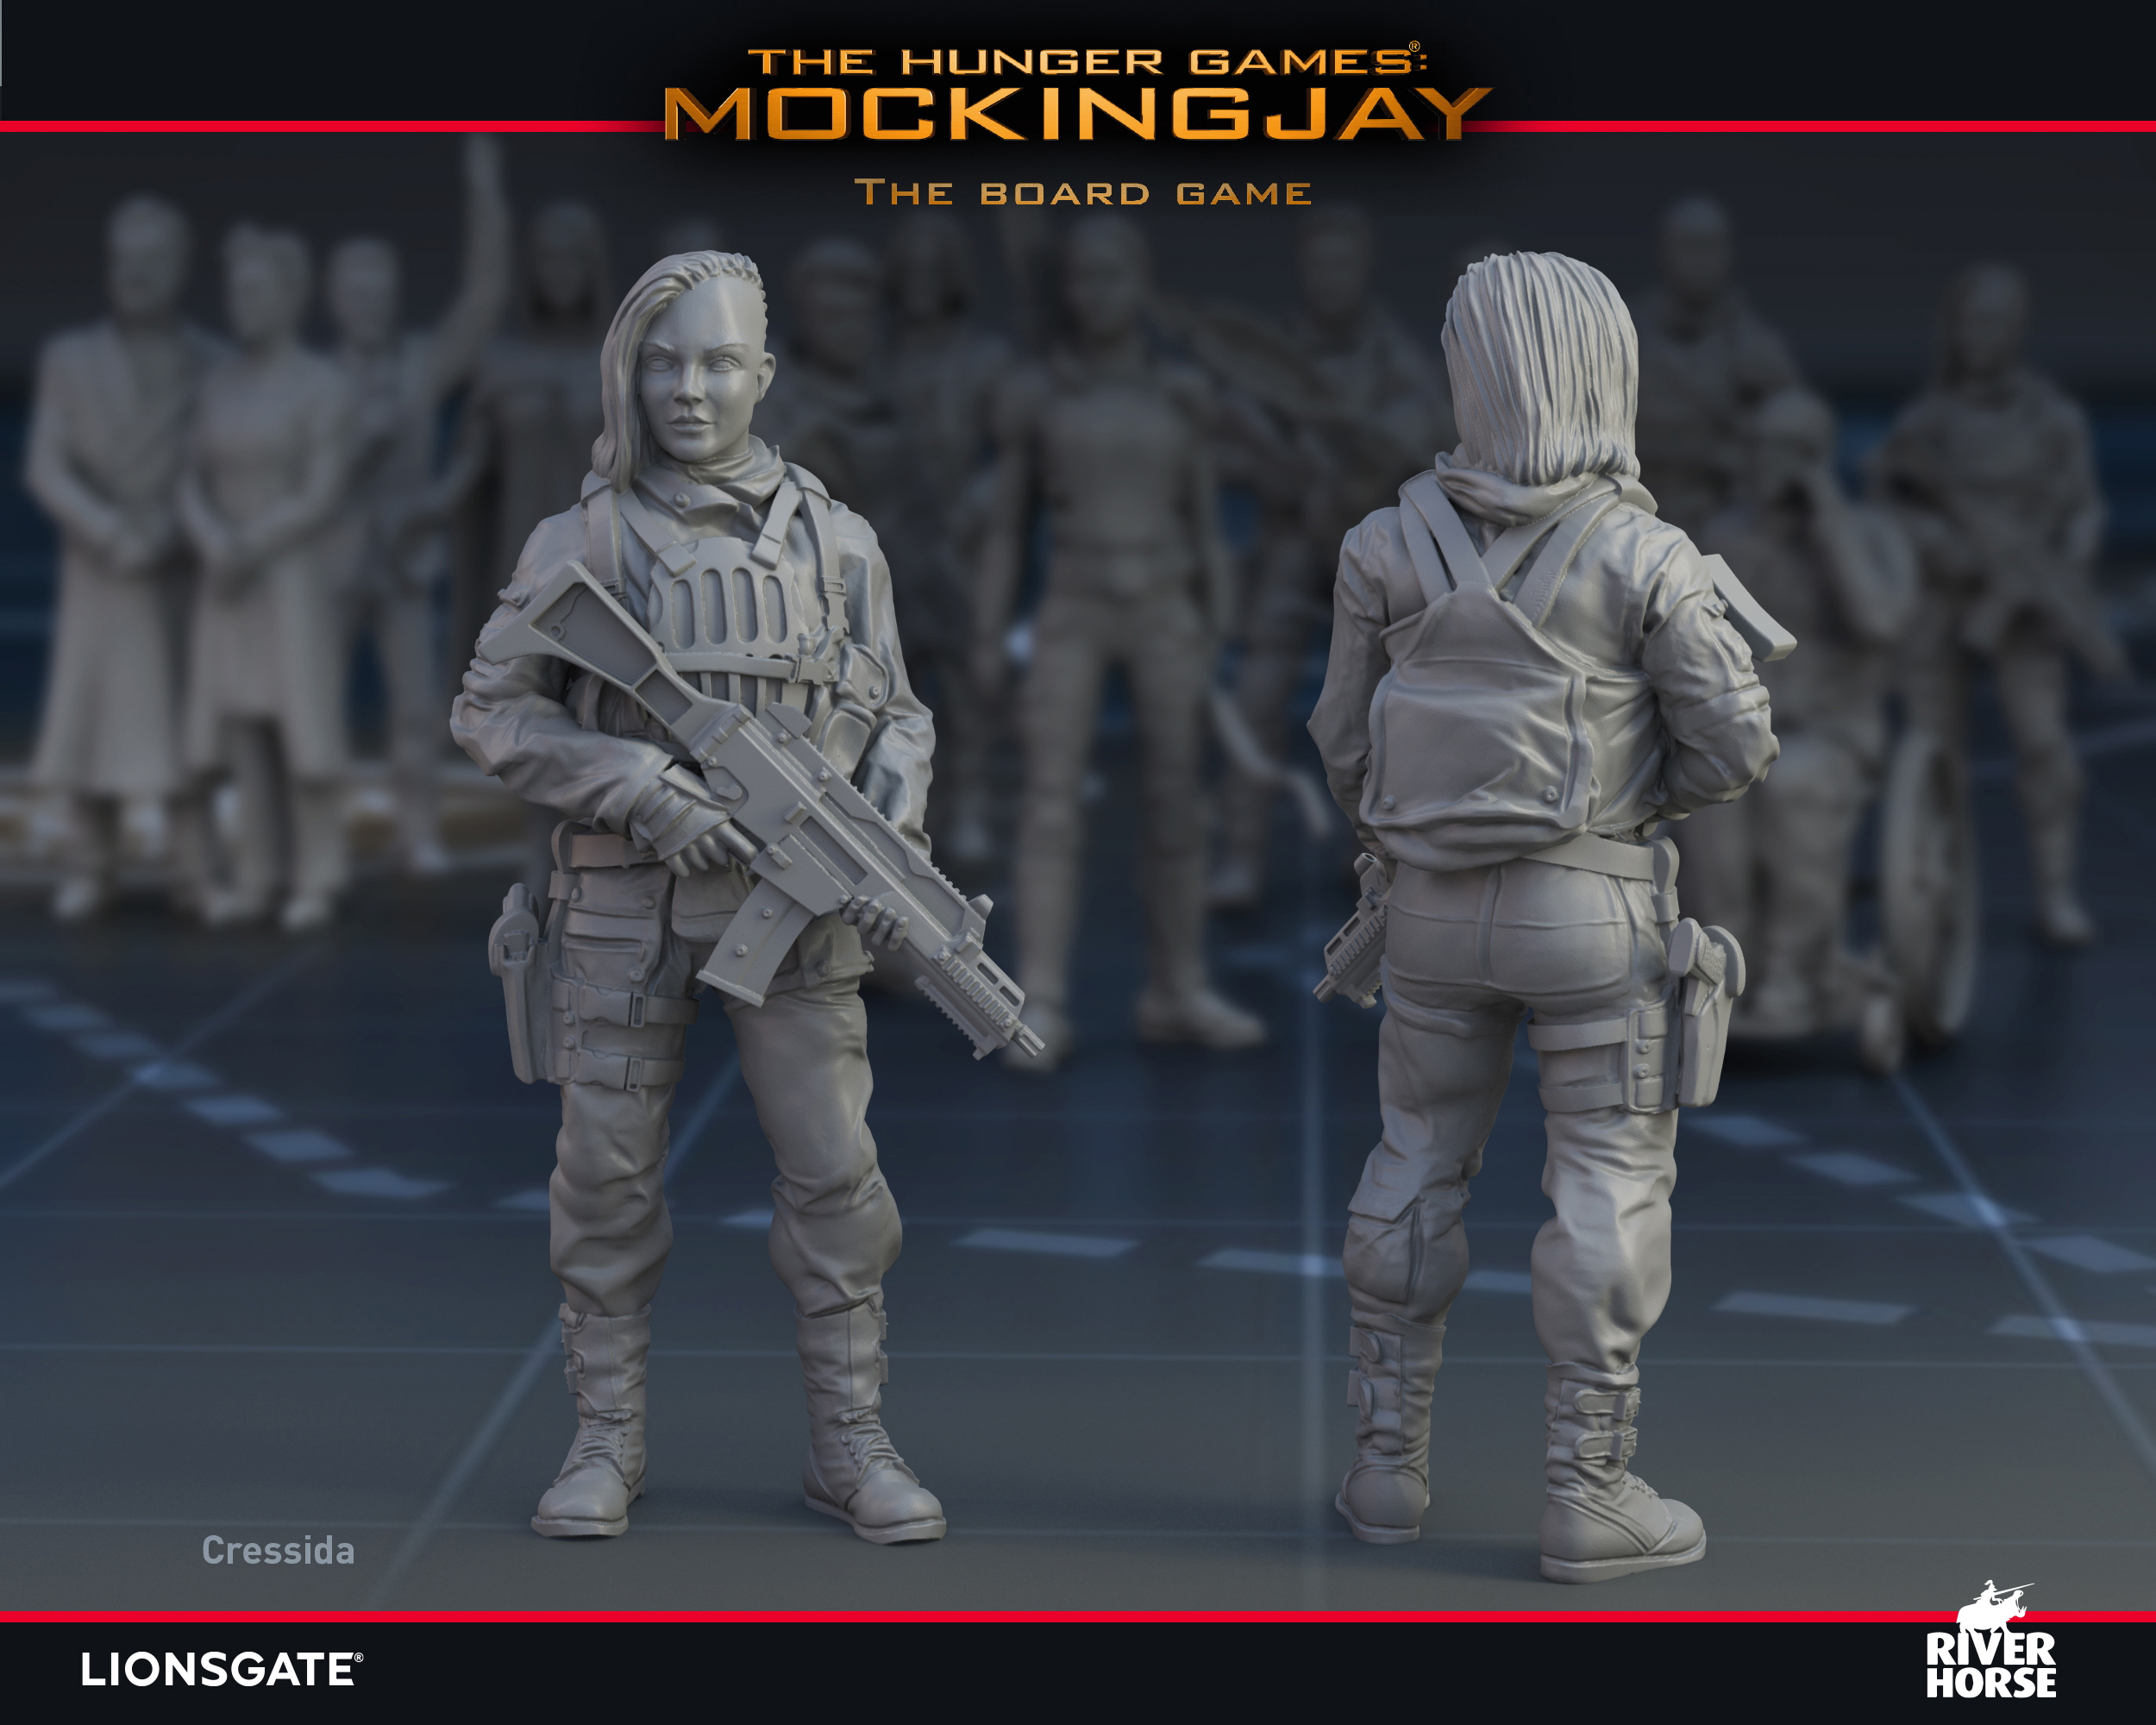 Render of Cressida for The Hunger Games: Mockingjay - The Board Game by River Horse